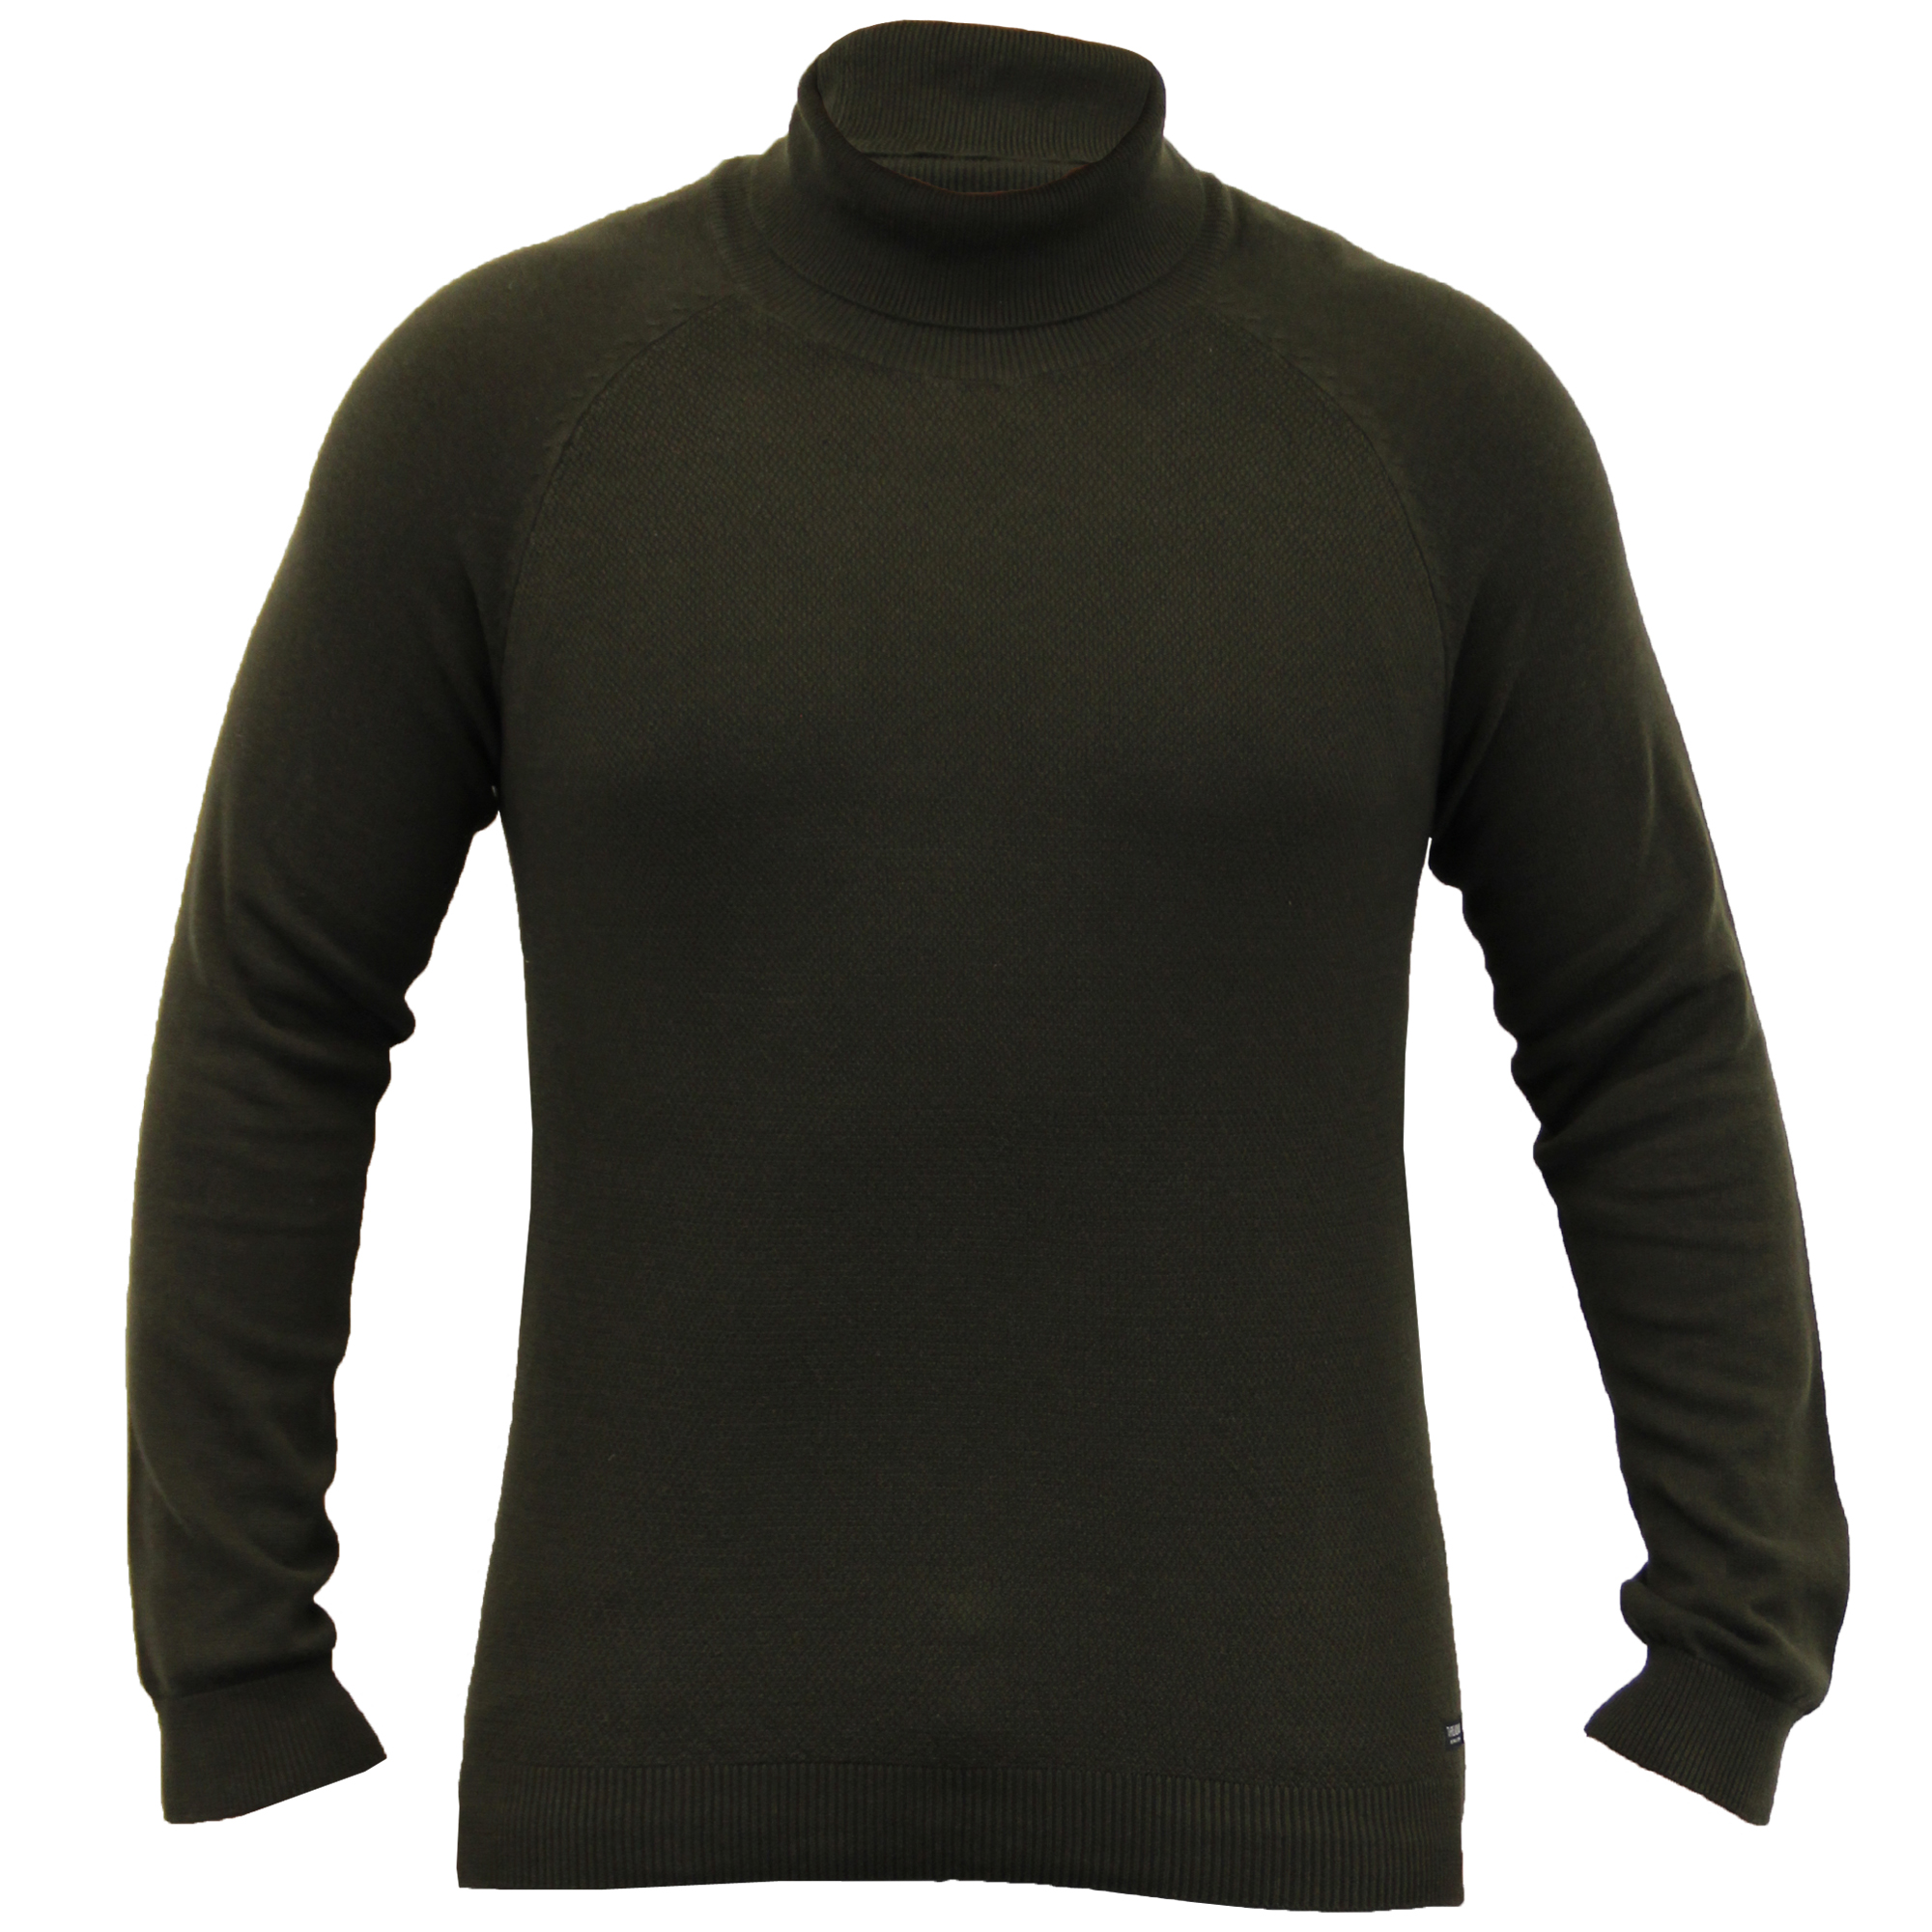 Mens-Jumper-Threadbare-Knitted-Sweater-Turtle-Polo-Neck-Pullover-Top-Winter-New thumbnail 2